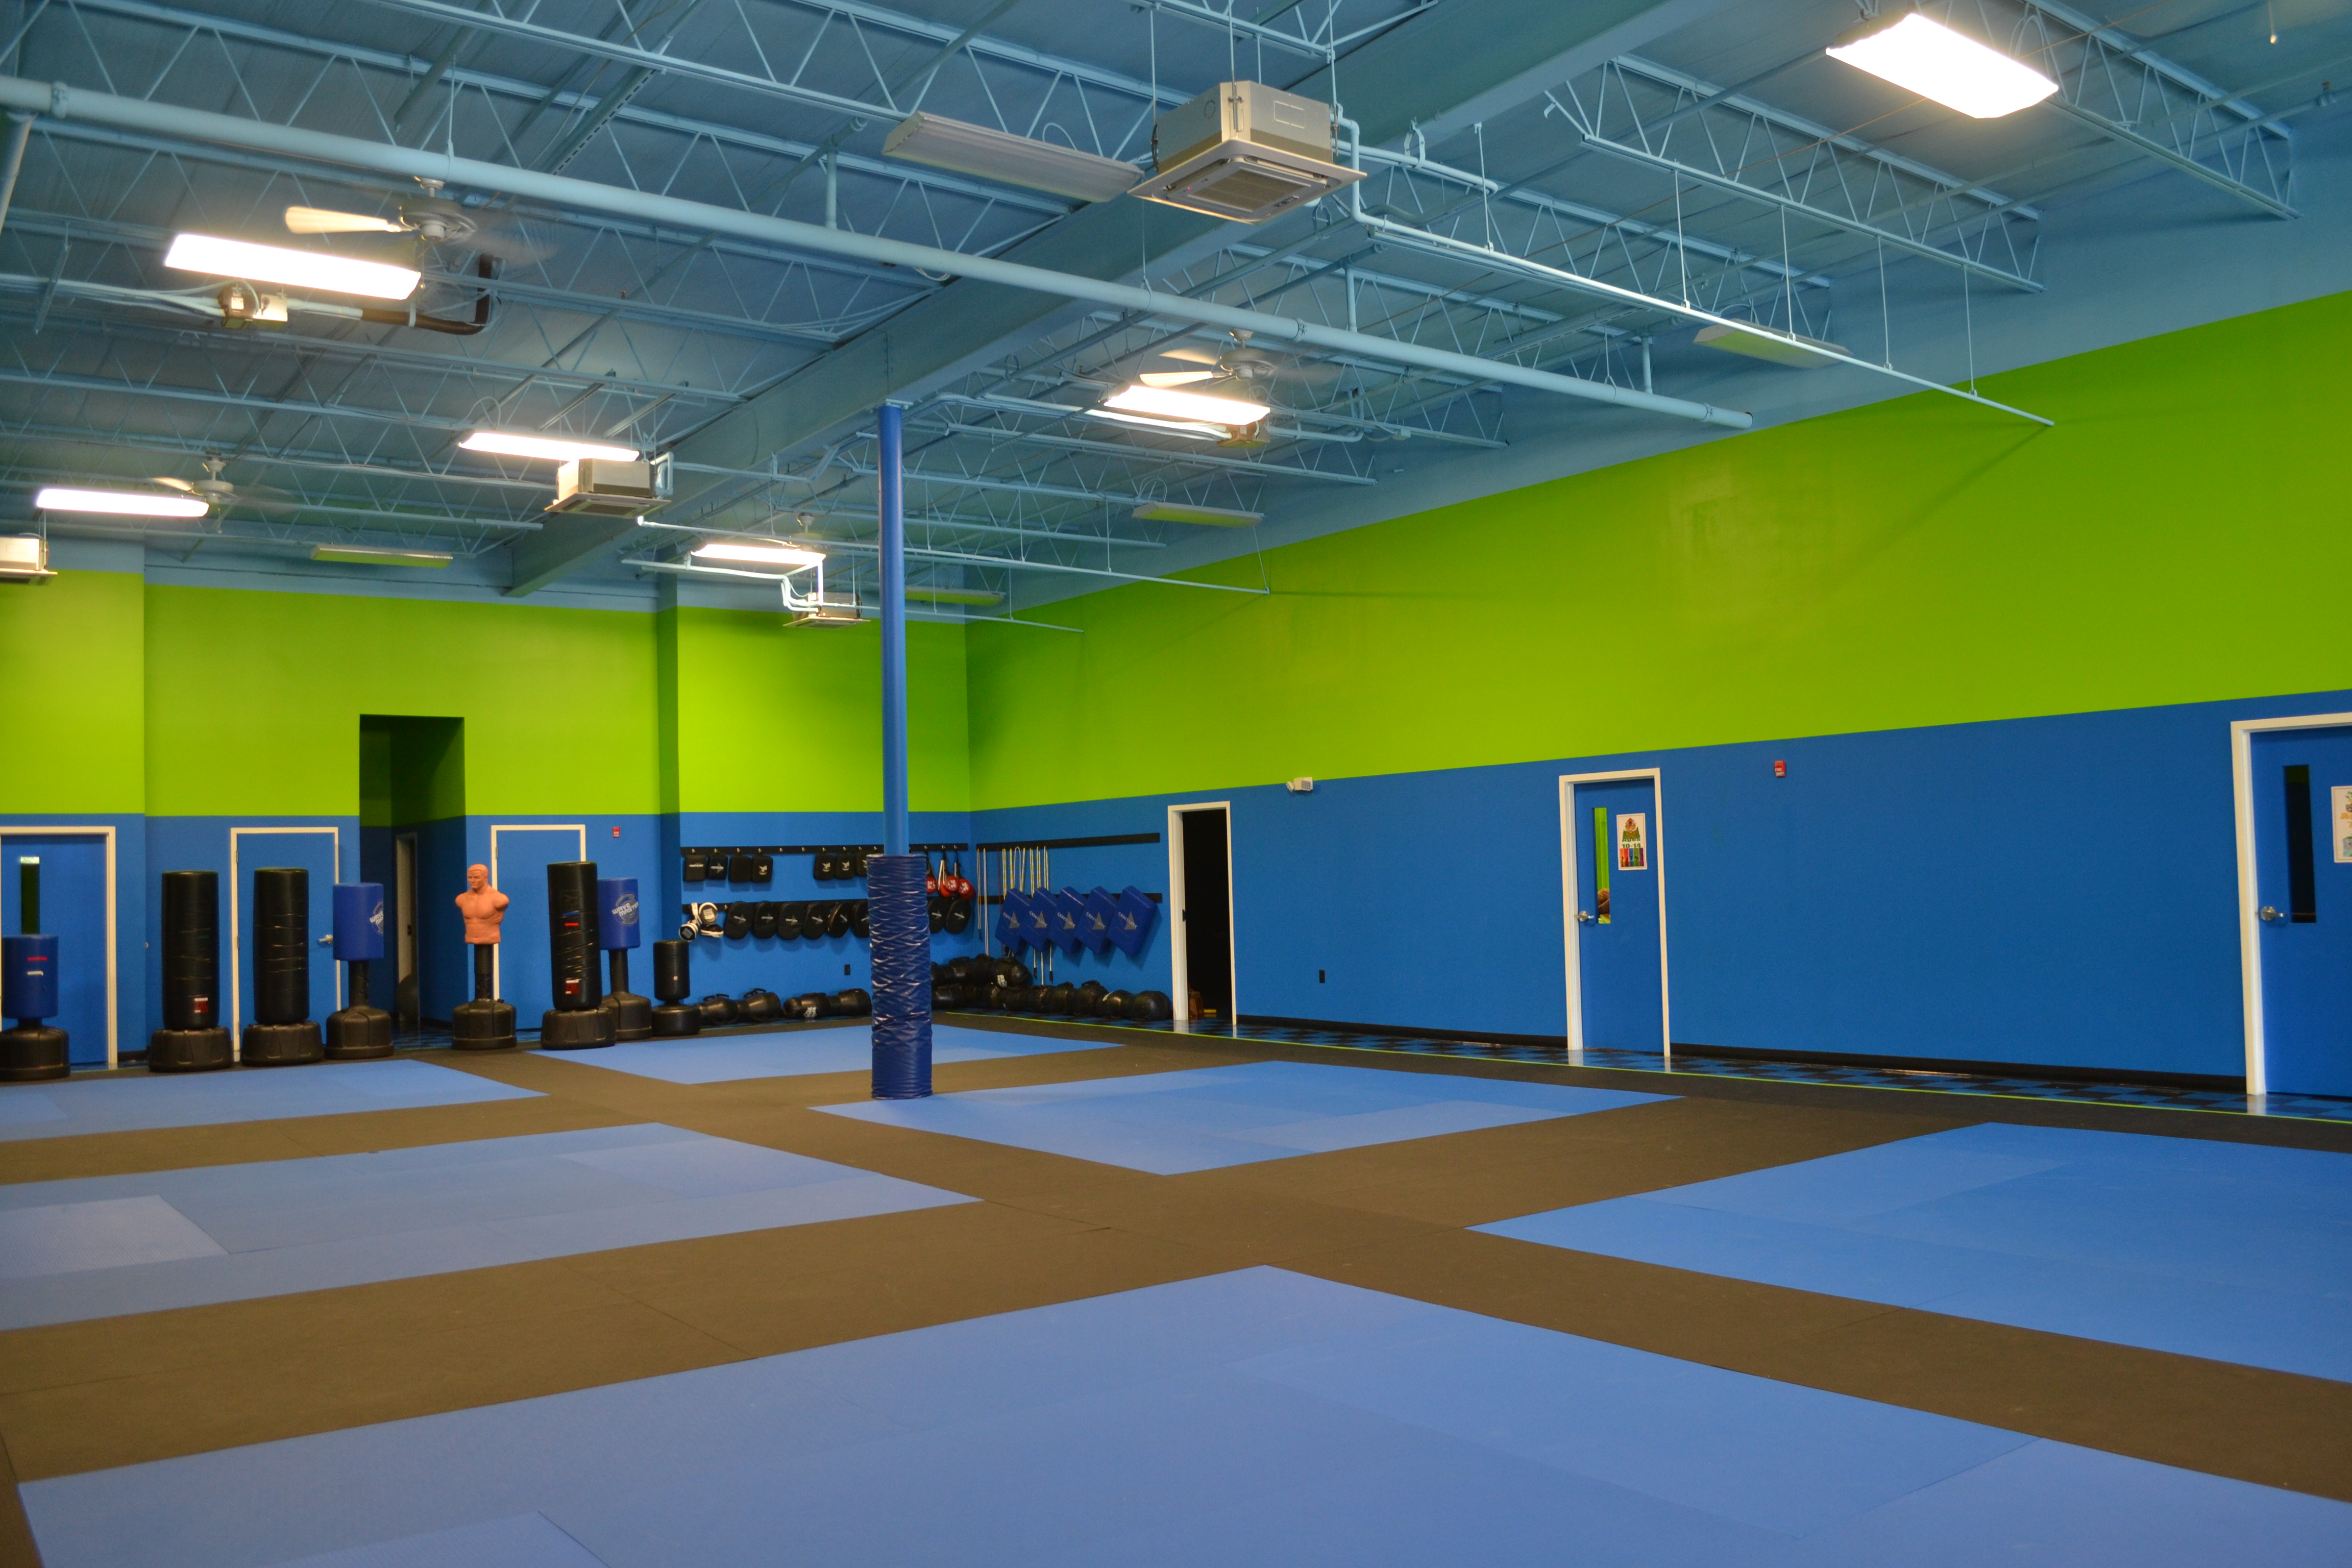 Ocean Pines Md >> 08/18/2016 | Chesapeake Martial Arts' New Facility Offers ...